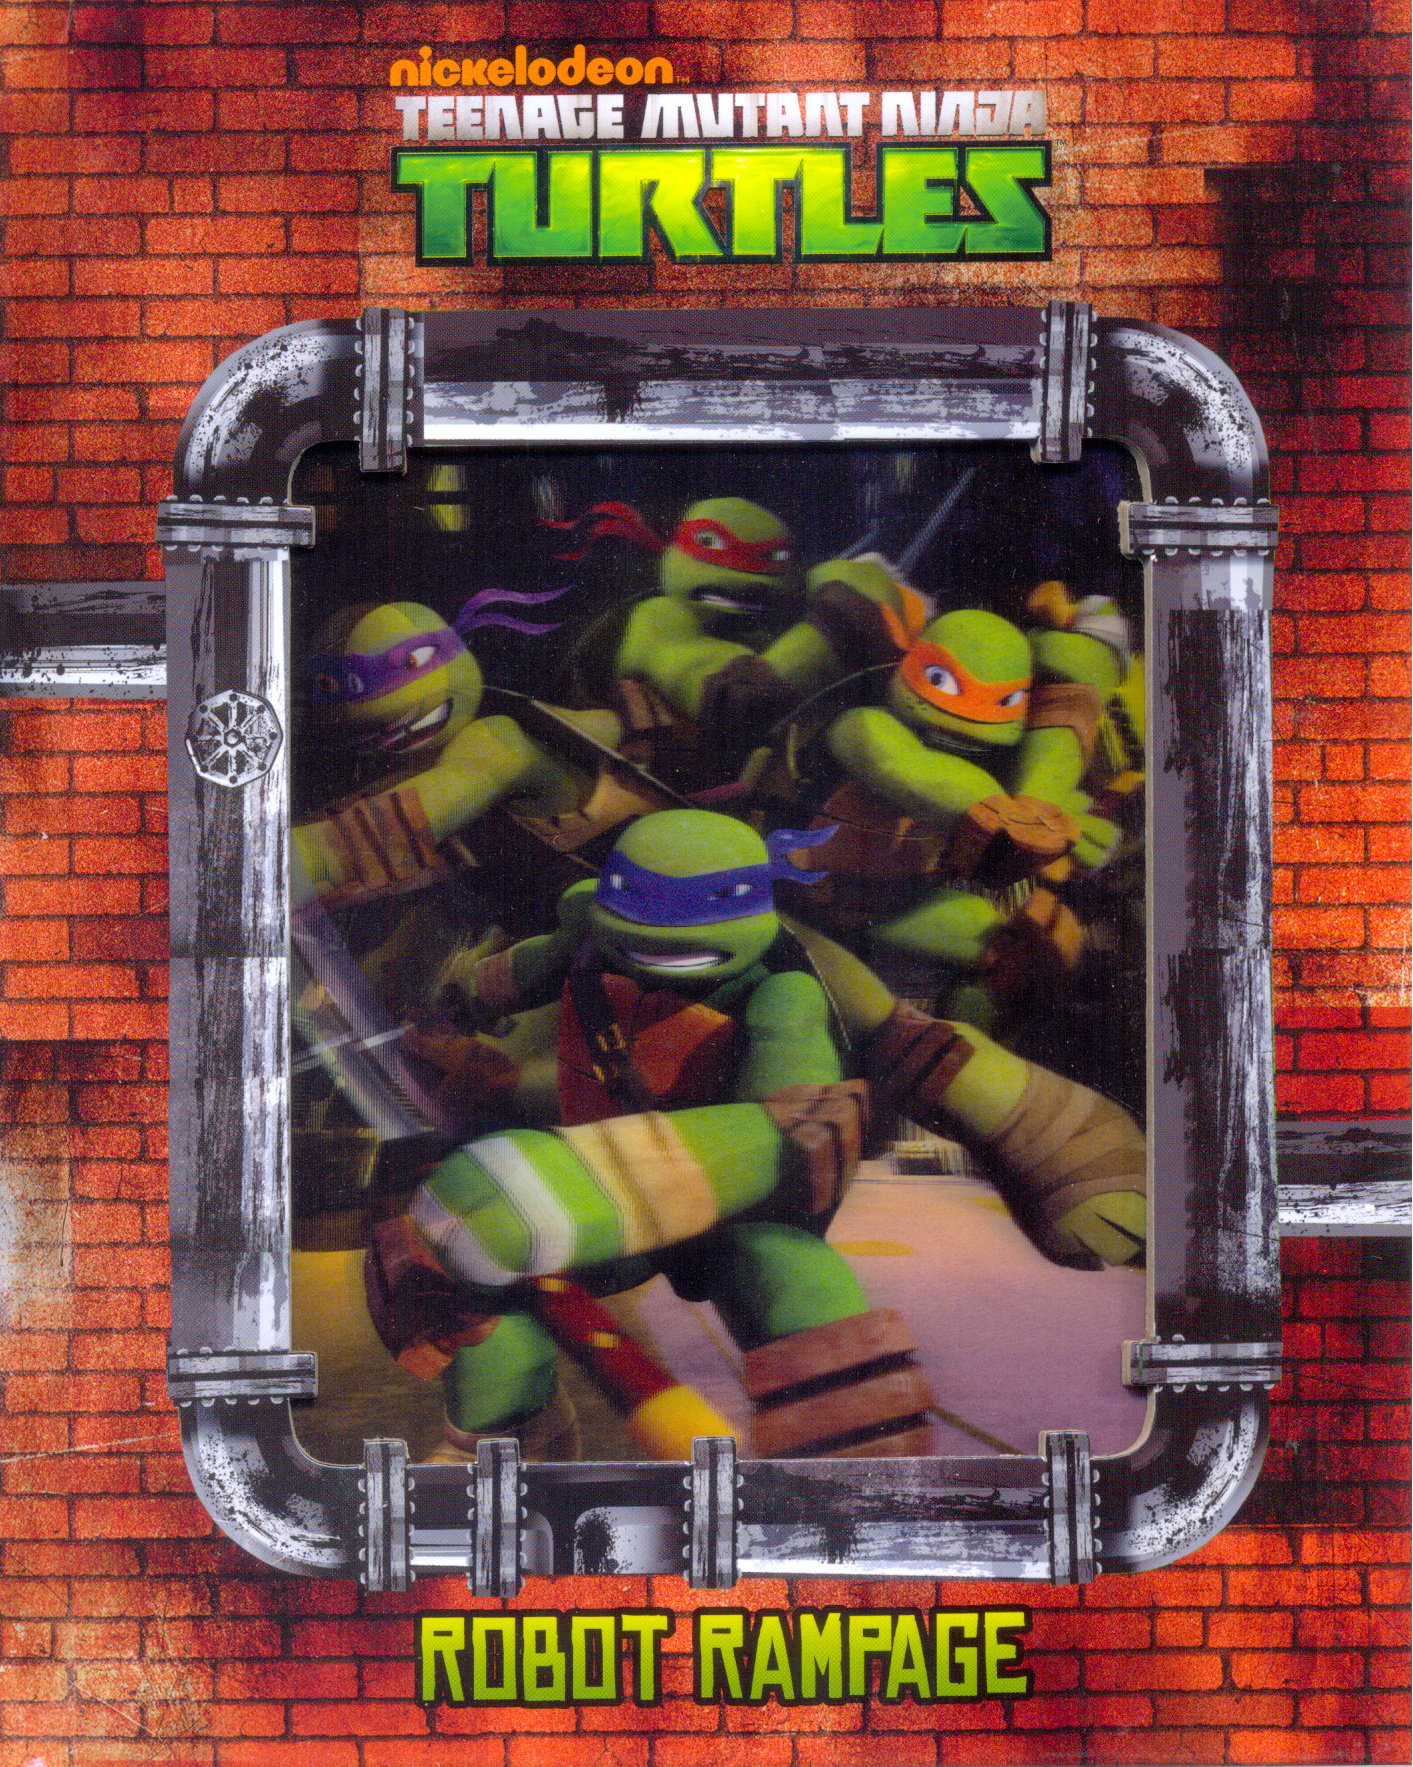 Nickelodeon Teenage Mutant Ninja Turtles : Robot Rampage